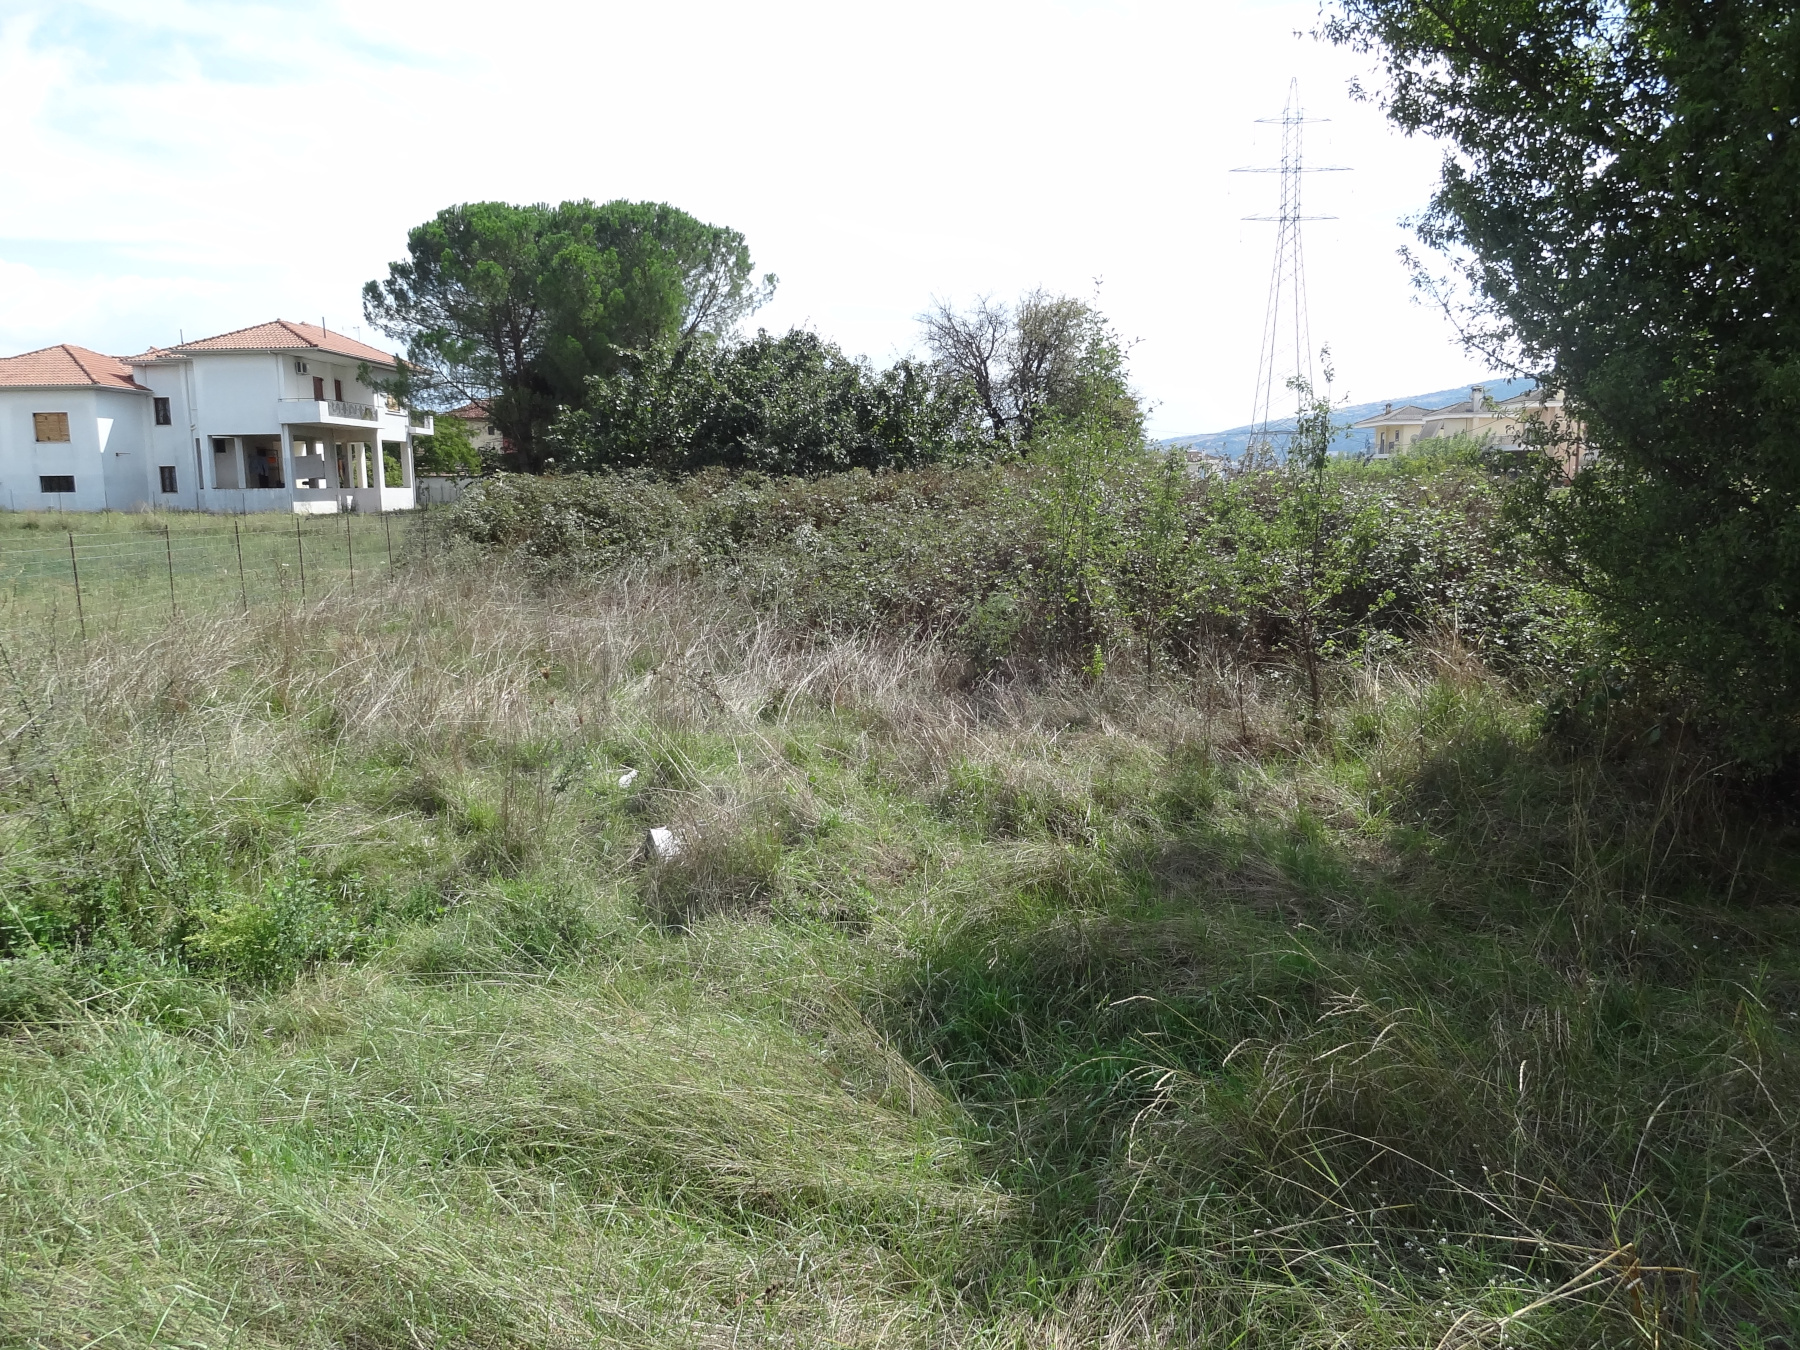 For sale a plot of 1,600 sq.m. with S.D. 0.5 in Kardamitsia, Ioannina on Olympiados Street